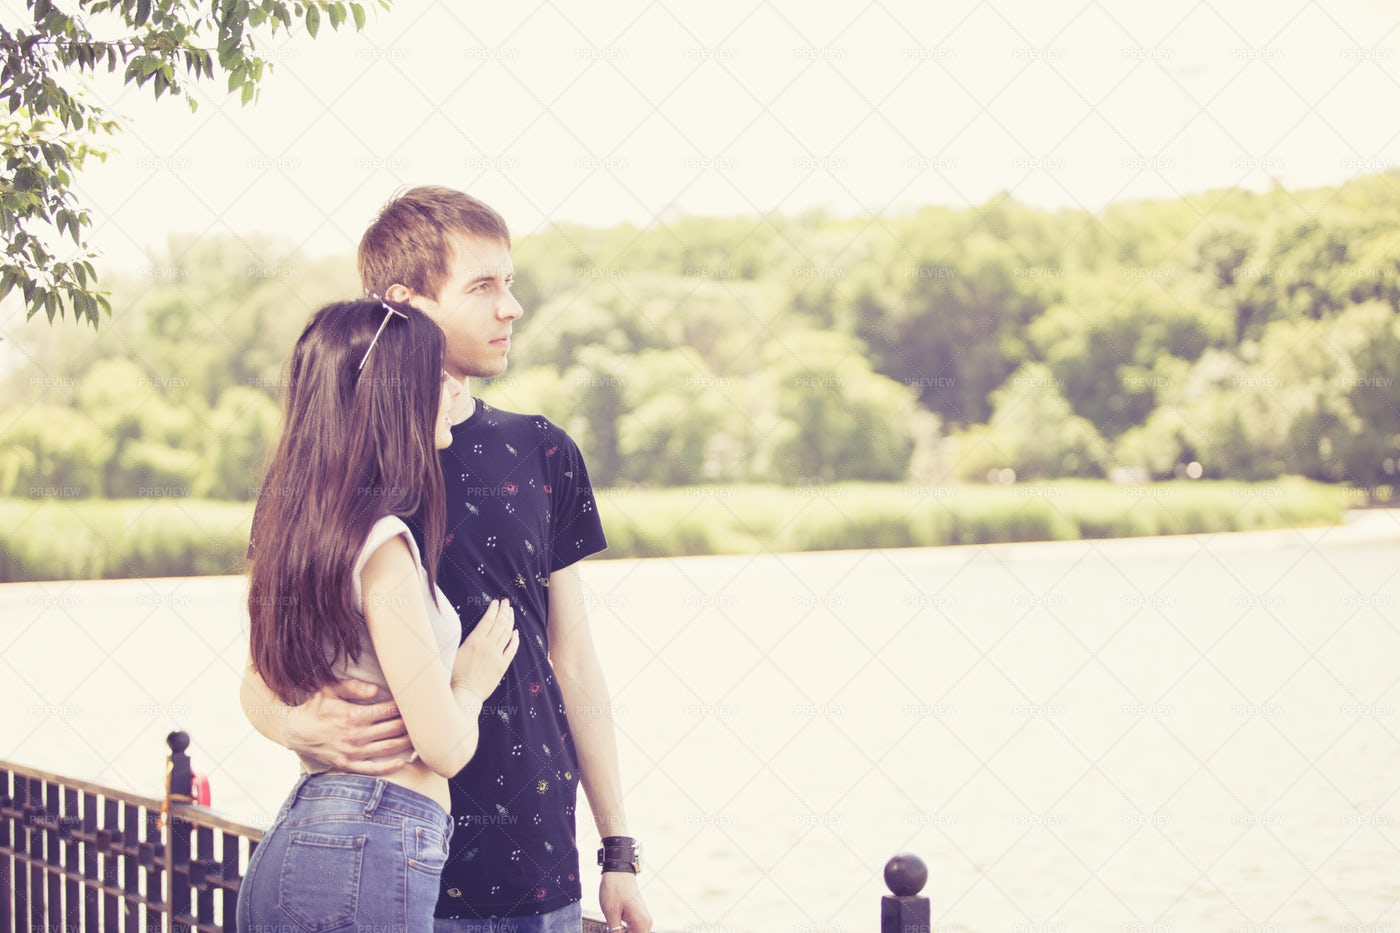 Happy Couple Taking A Walk In The Park: Stock Photos